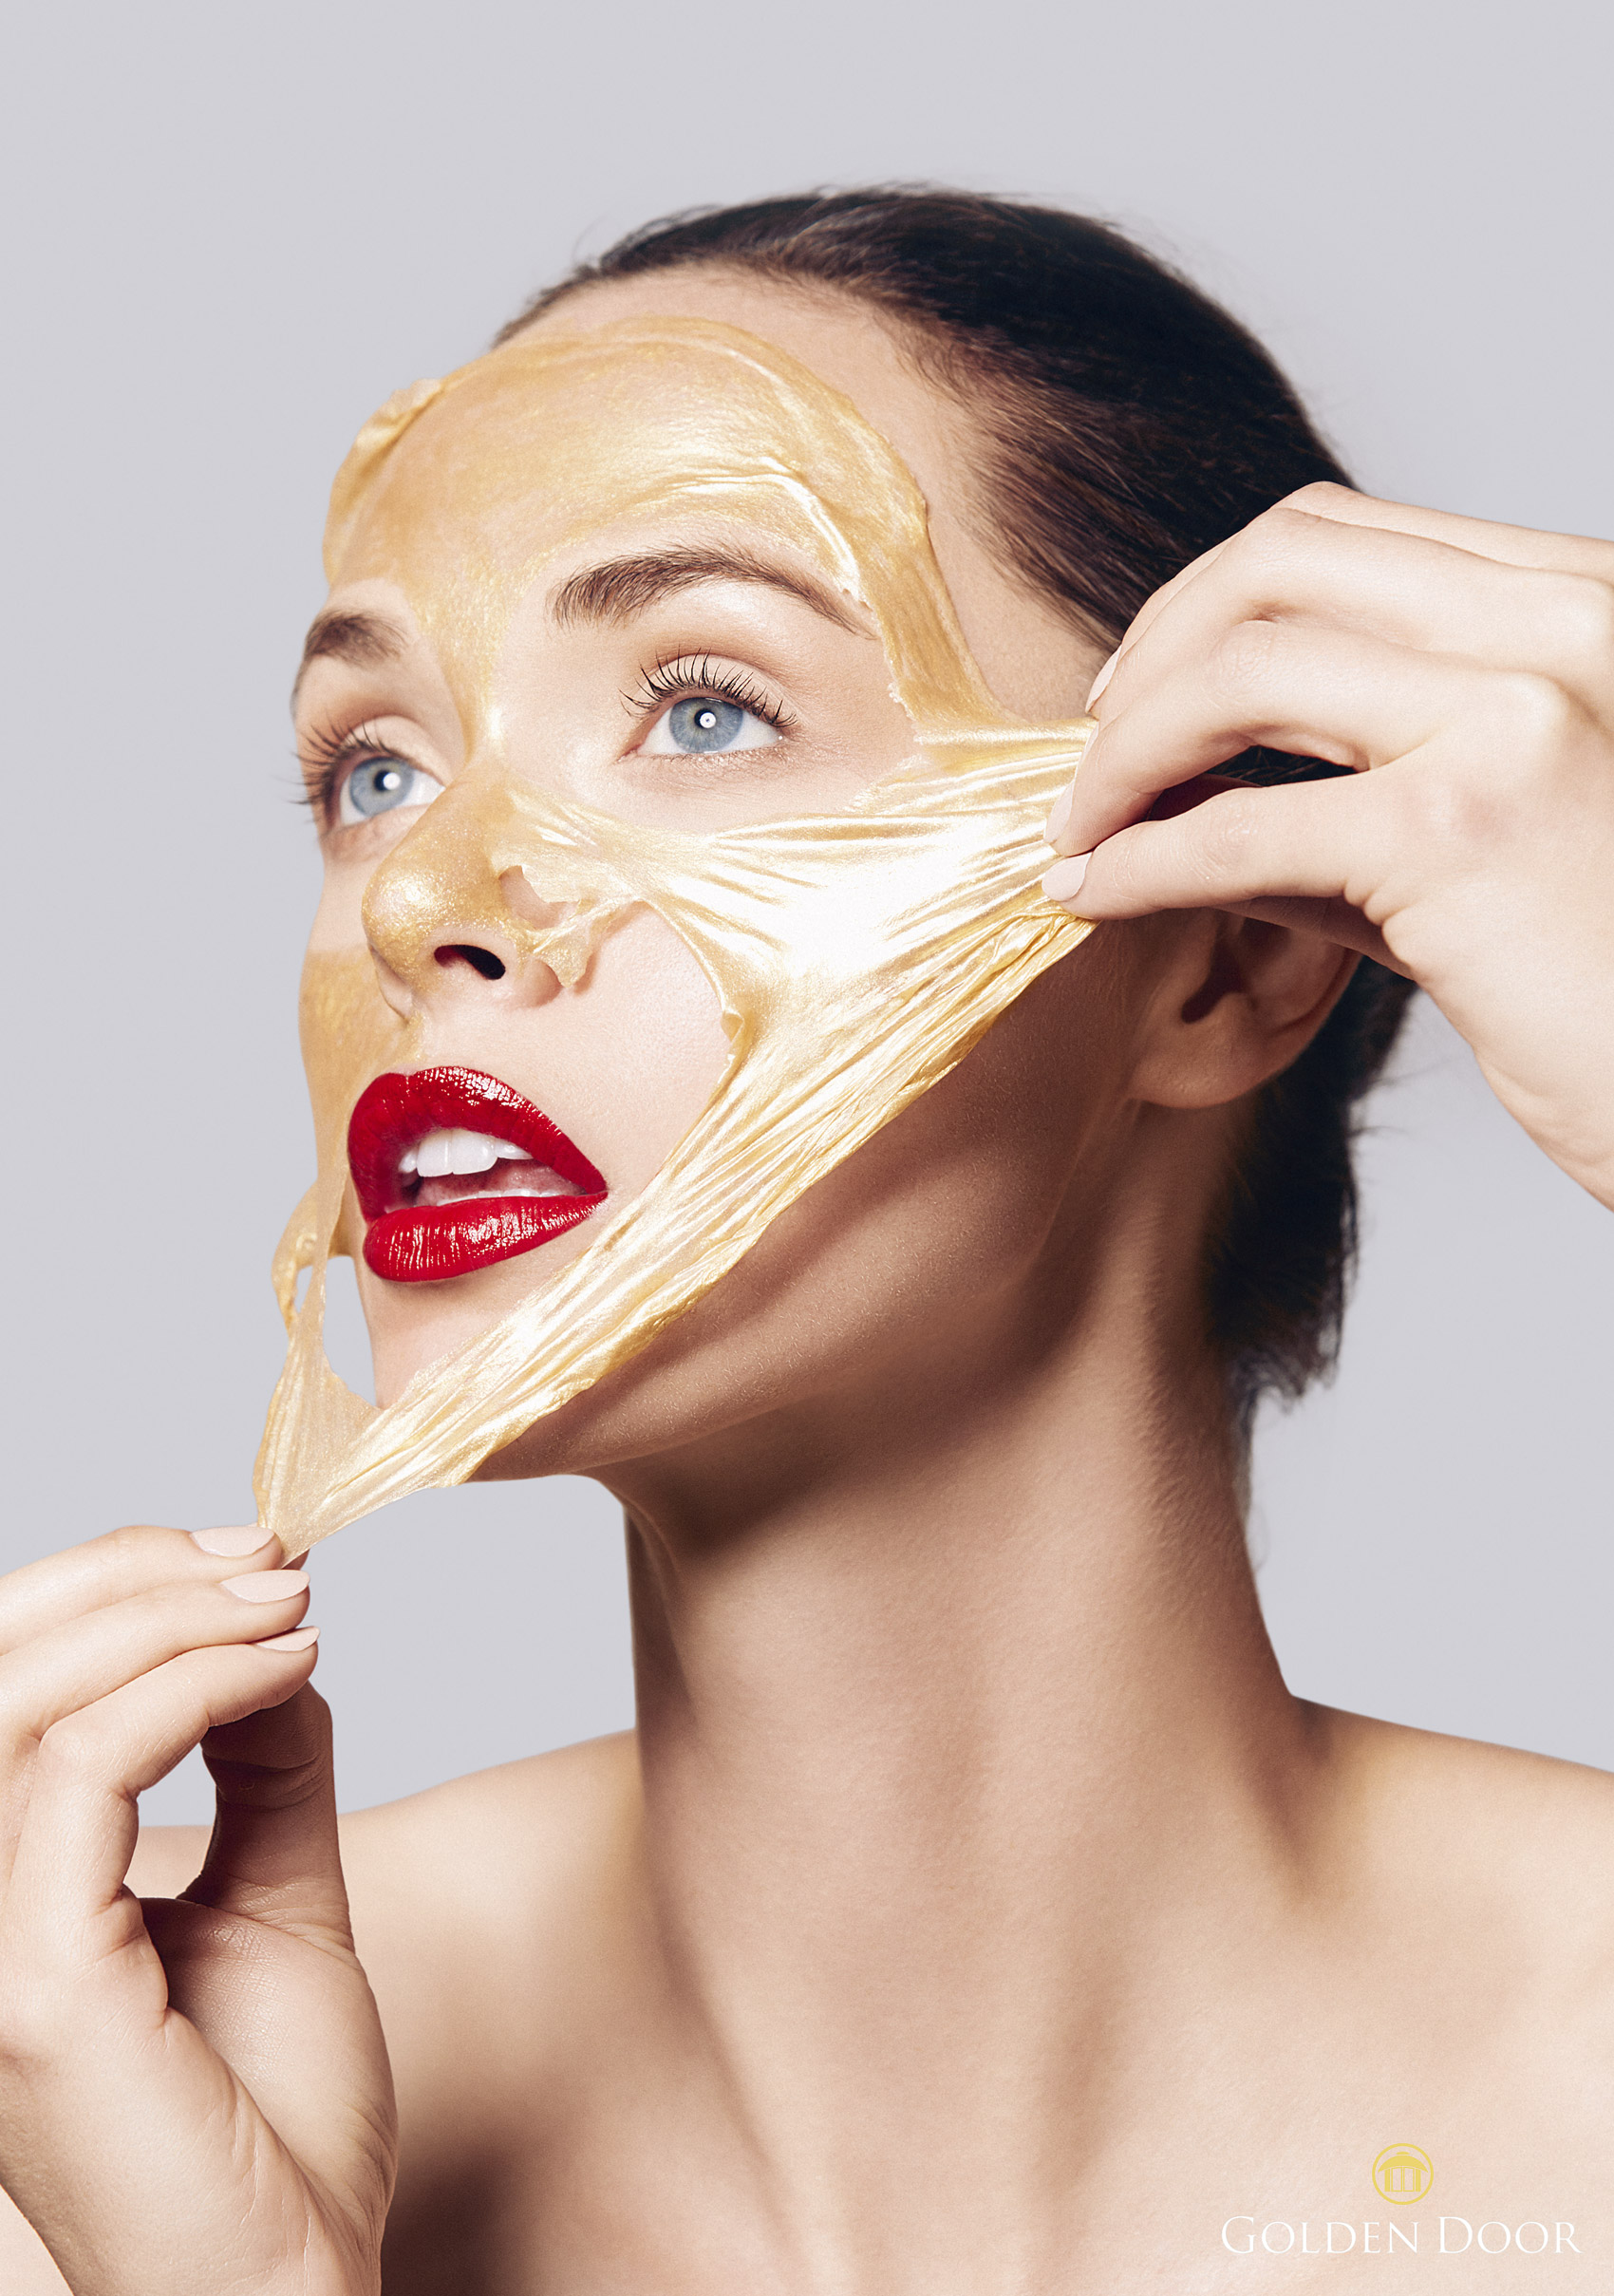 Girl wearing red lipstick peeling off a gold face mask - Kimberly Genevieve Los Angeles Lifestyle Advertising Photographer